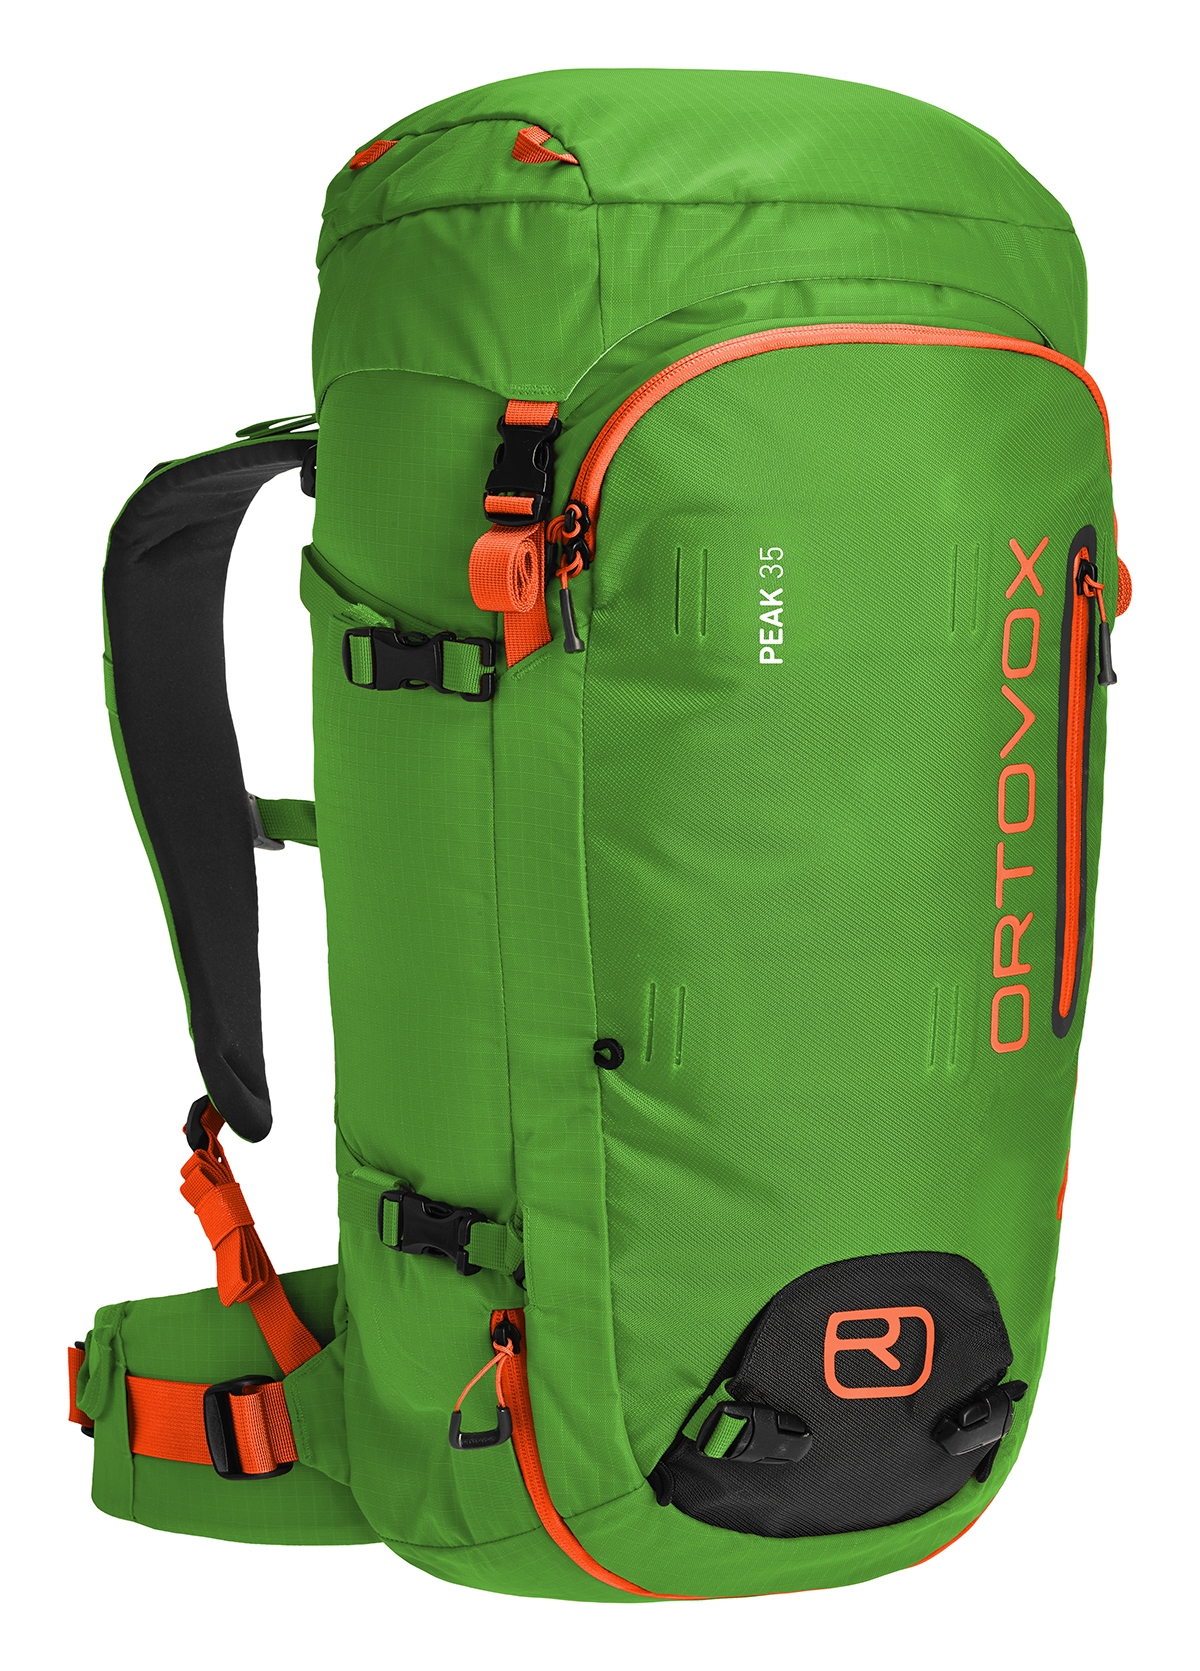 Ortovox Peak 35 Backcountry Pack .  True story:  this is the best ski pack I've ever had the pleasure of carrying.  Clean lines, incredible attention to detail, carries great, and has a perimeter zipper that will make you turn your nose up at every other pack.  Is it possible a pack can make you want to ski more?  This one does.   LINK